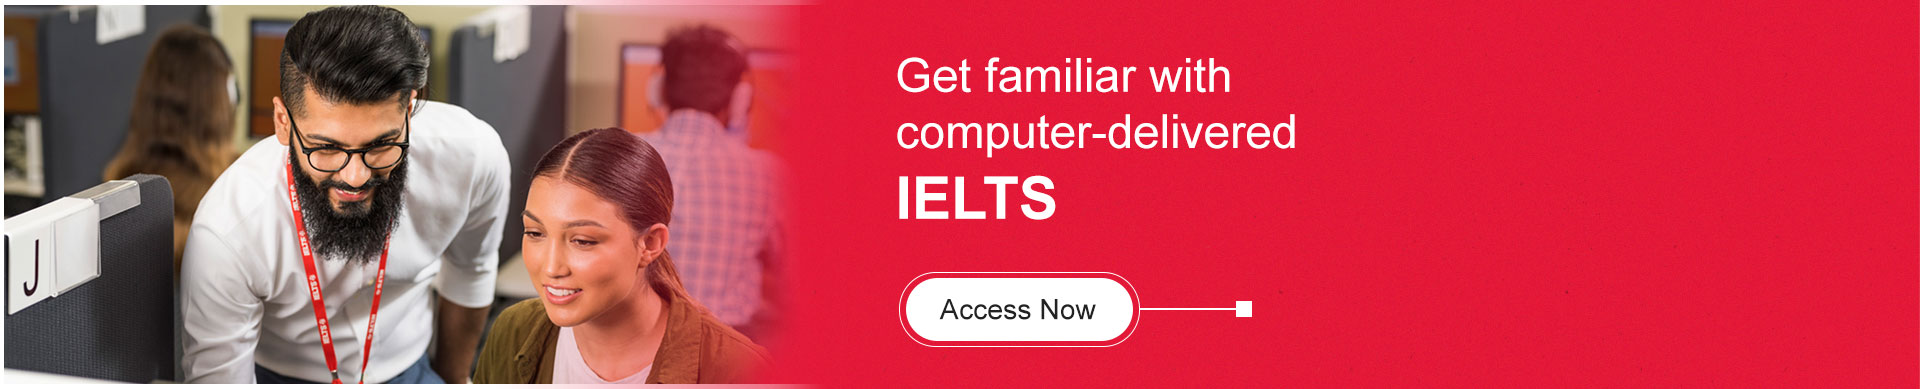 Computer Delivered IELTS Test 2019, now in India -IELTS IDP